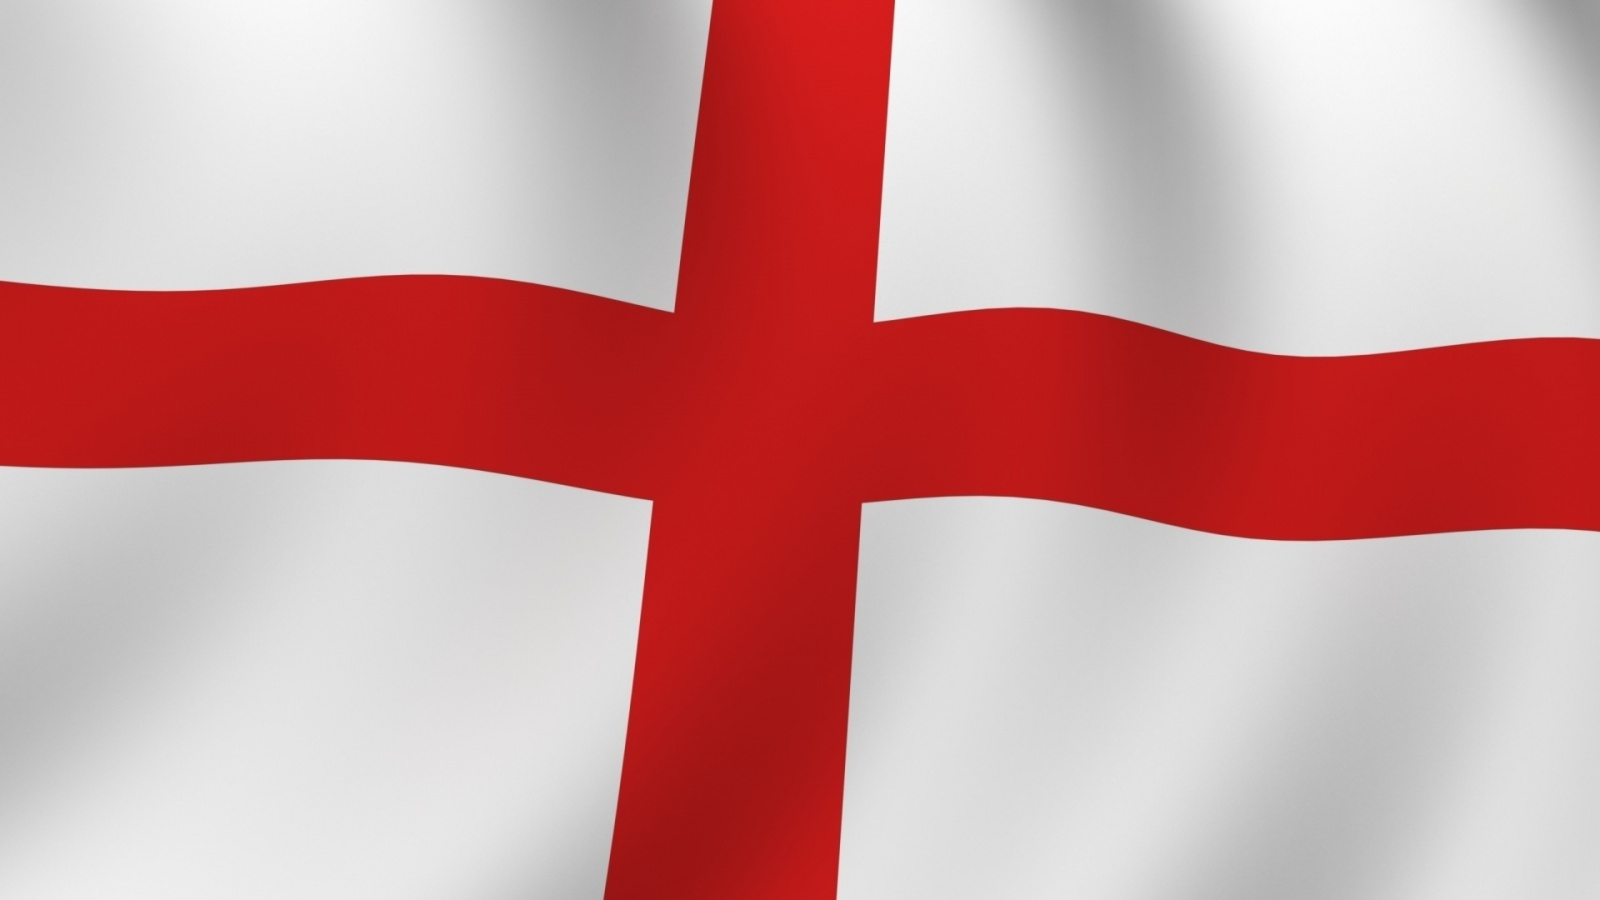 England Flag Wallpapers 1600x900 148494